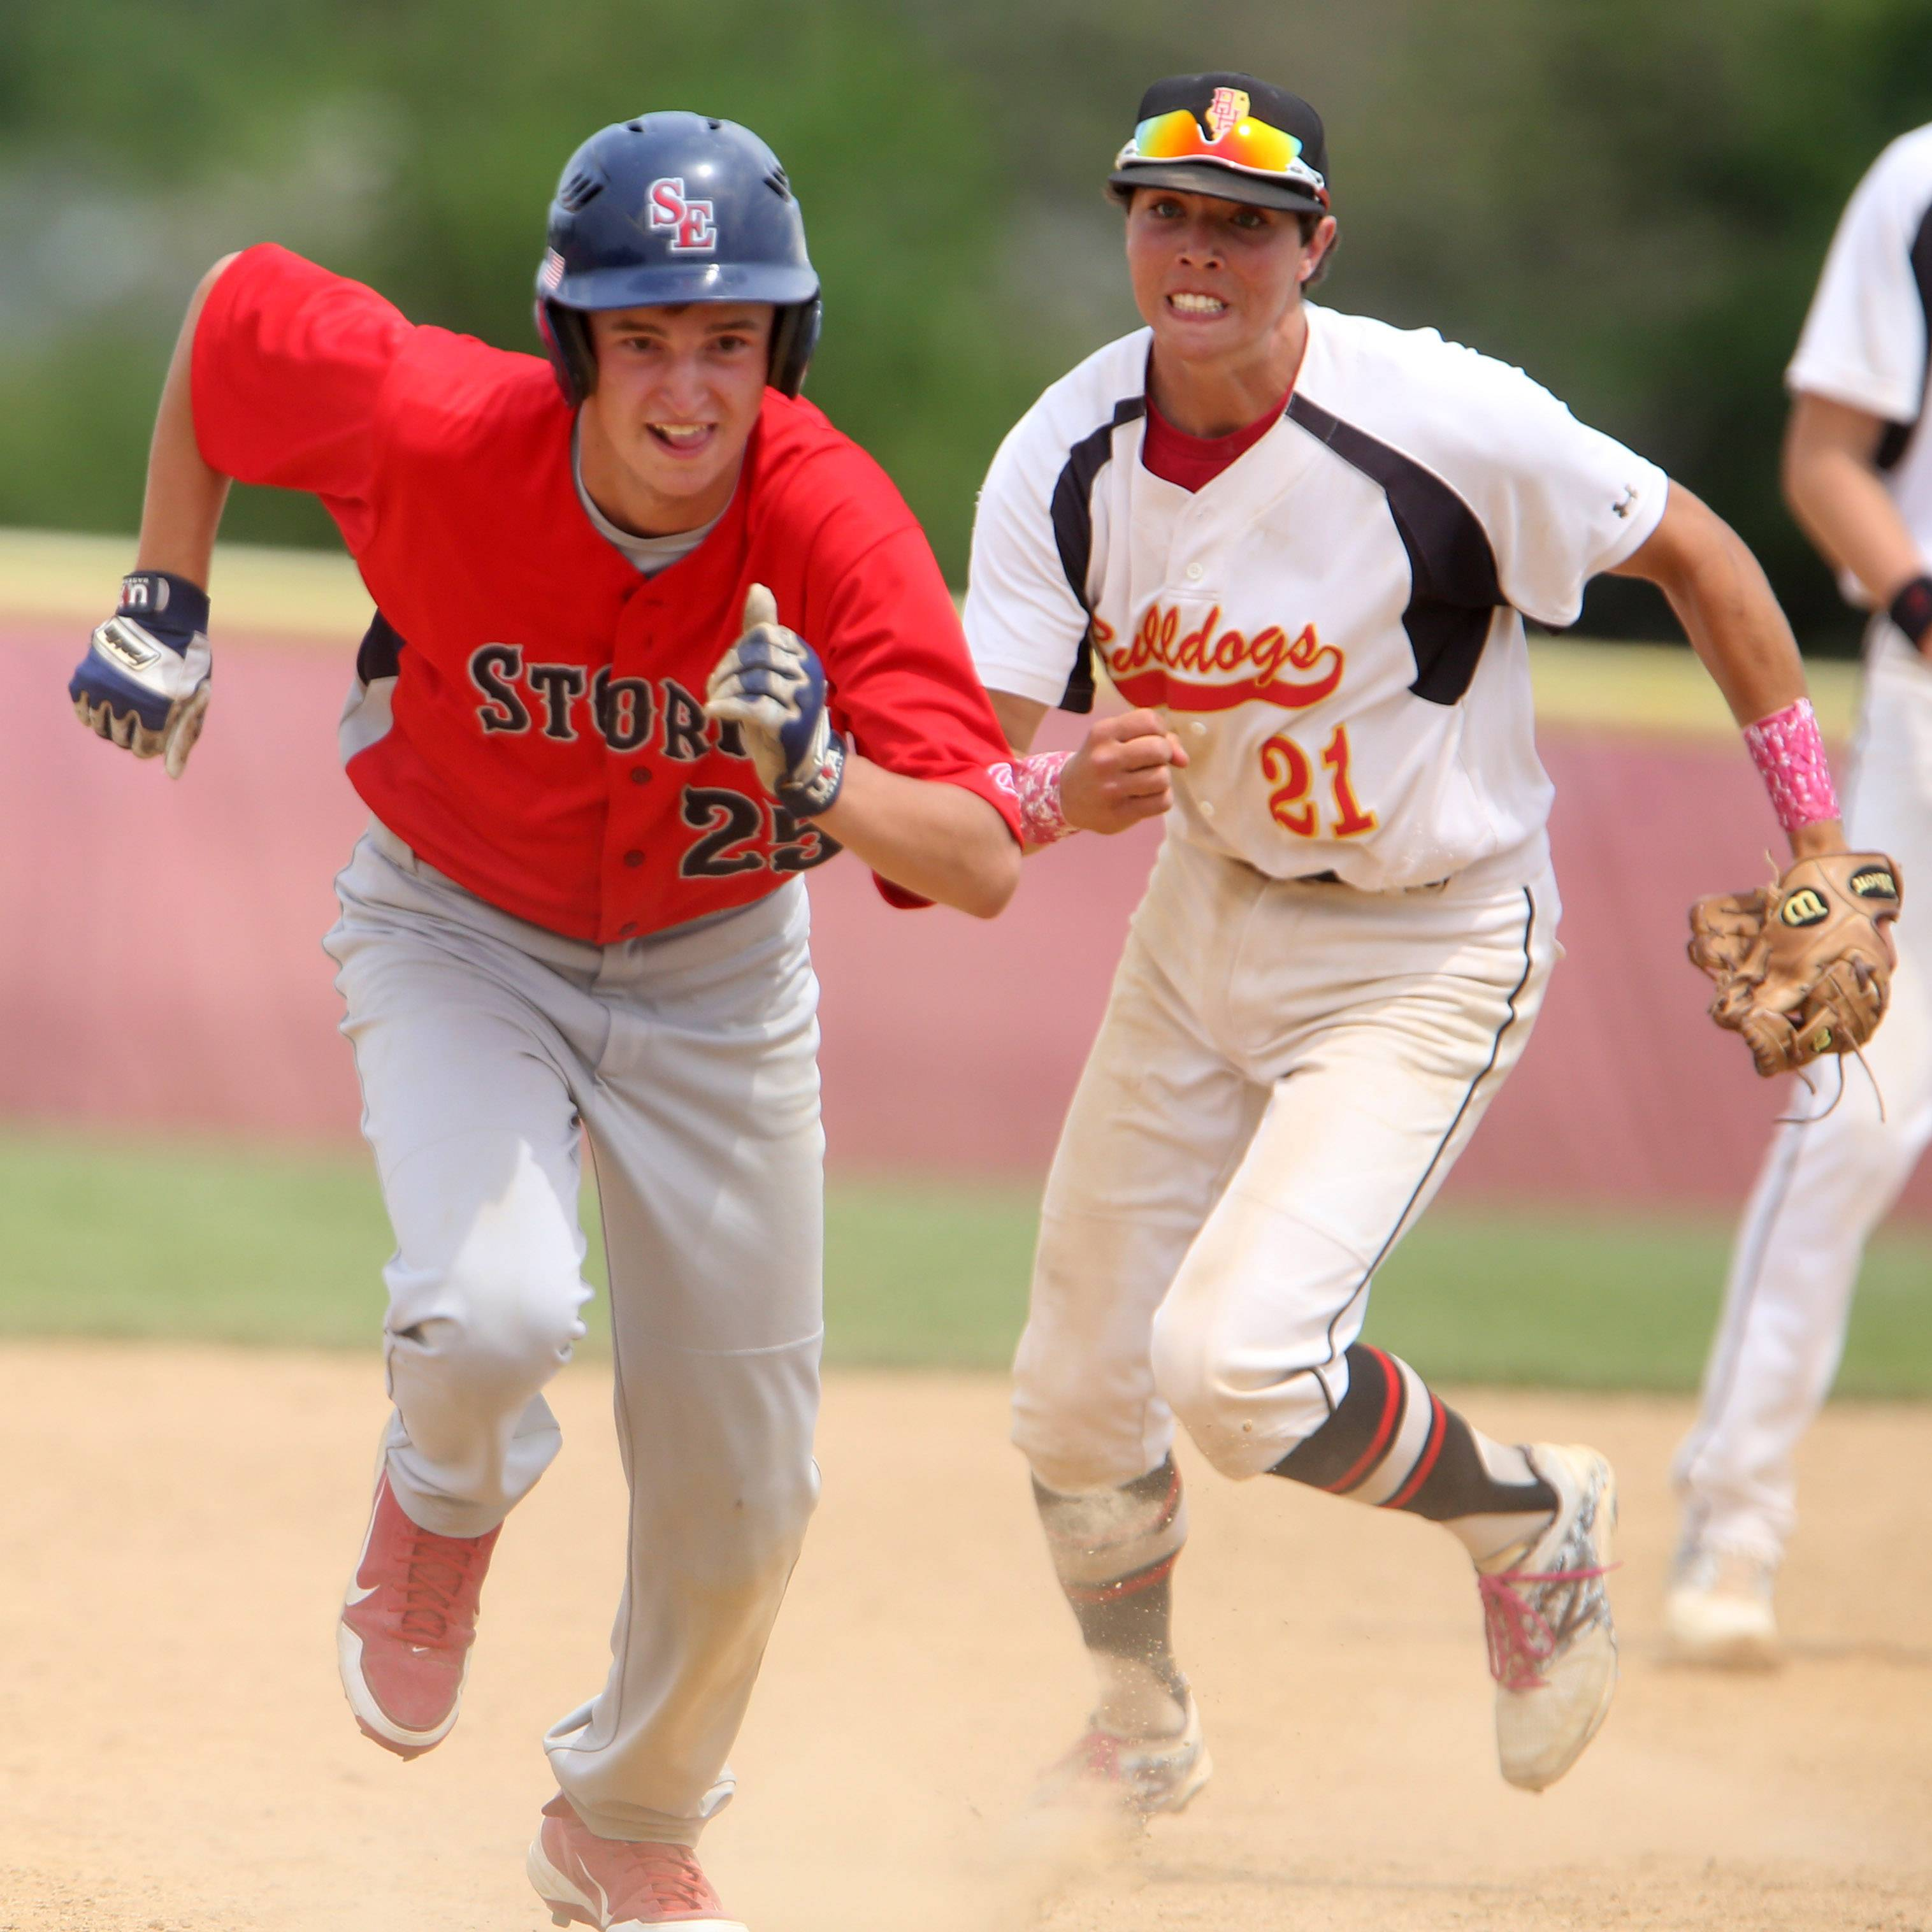 South Elgin's Kevin Barry is caught in a rundown and is chased by Batavia second baseman Jeremy Schoessling in Schaumburg sectional championship game Saturday.